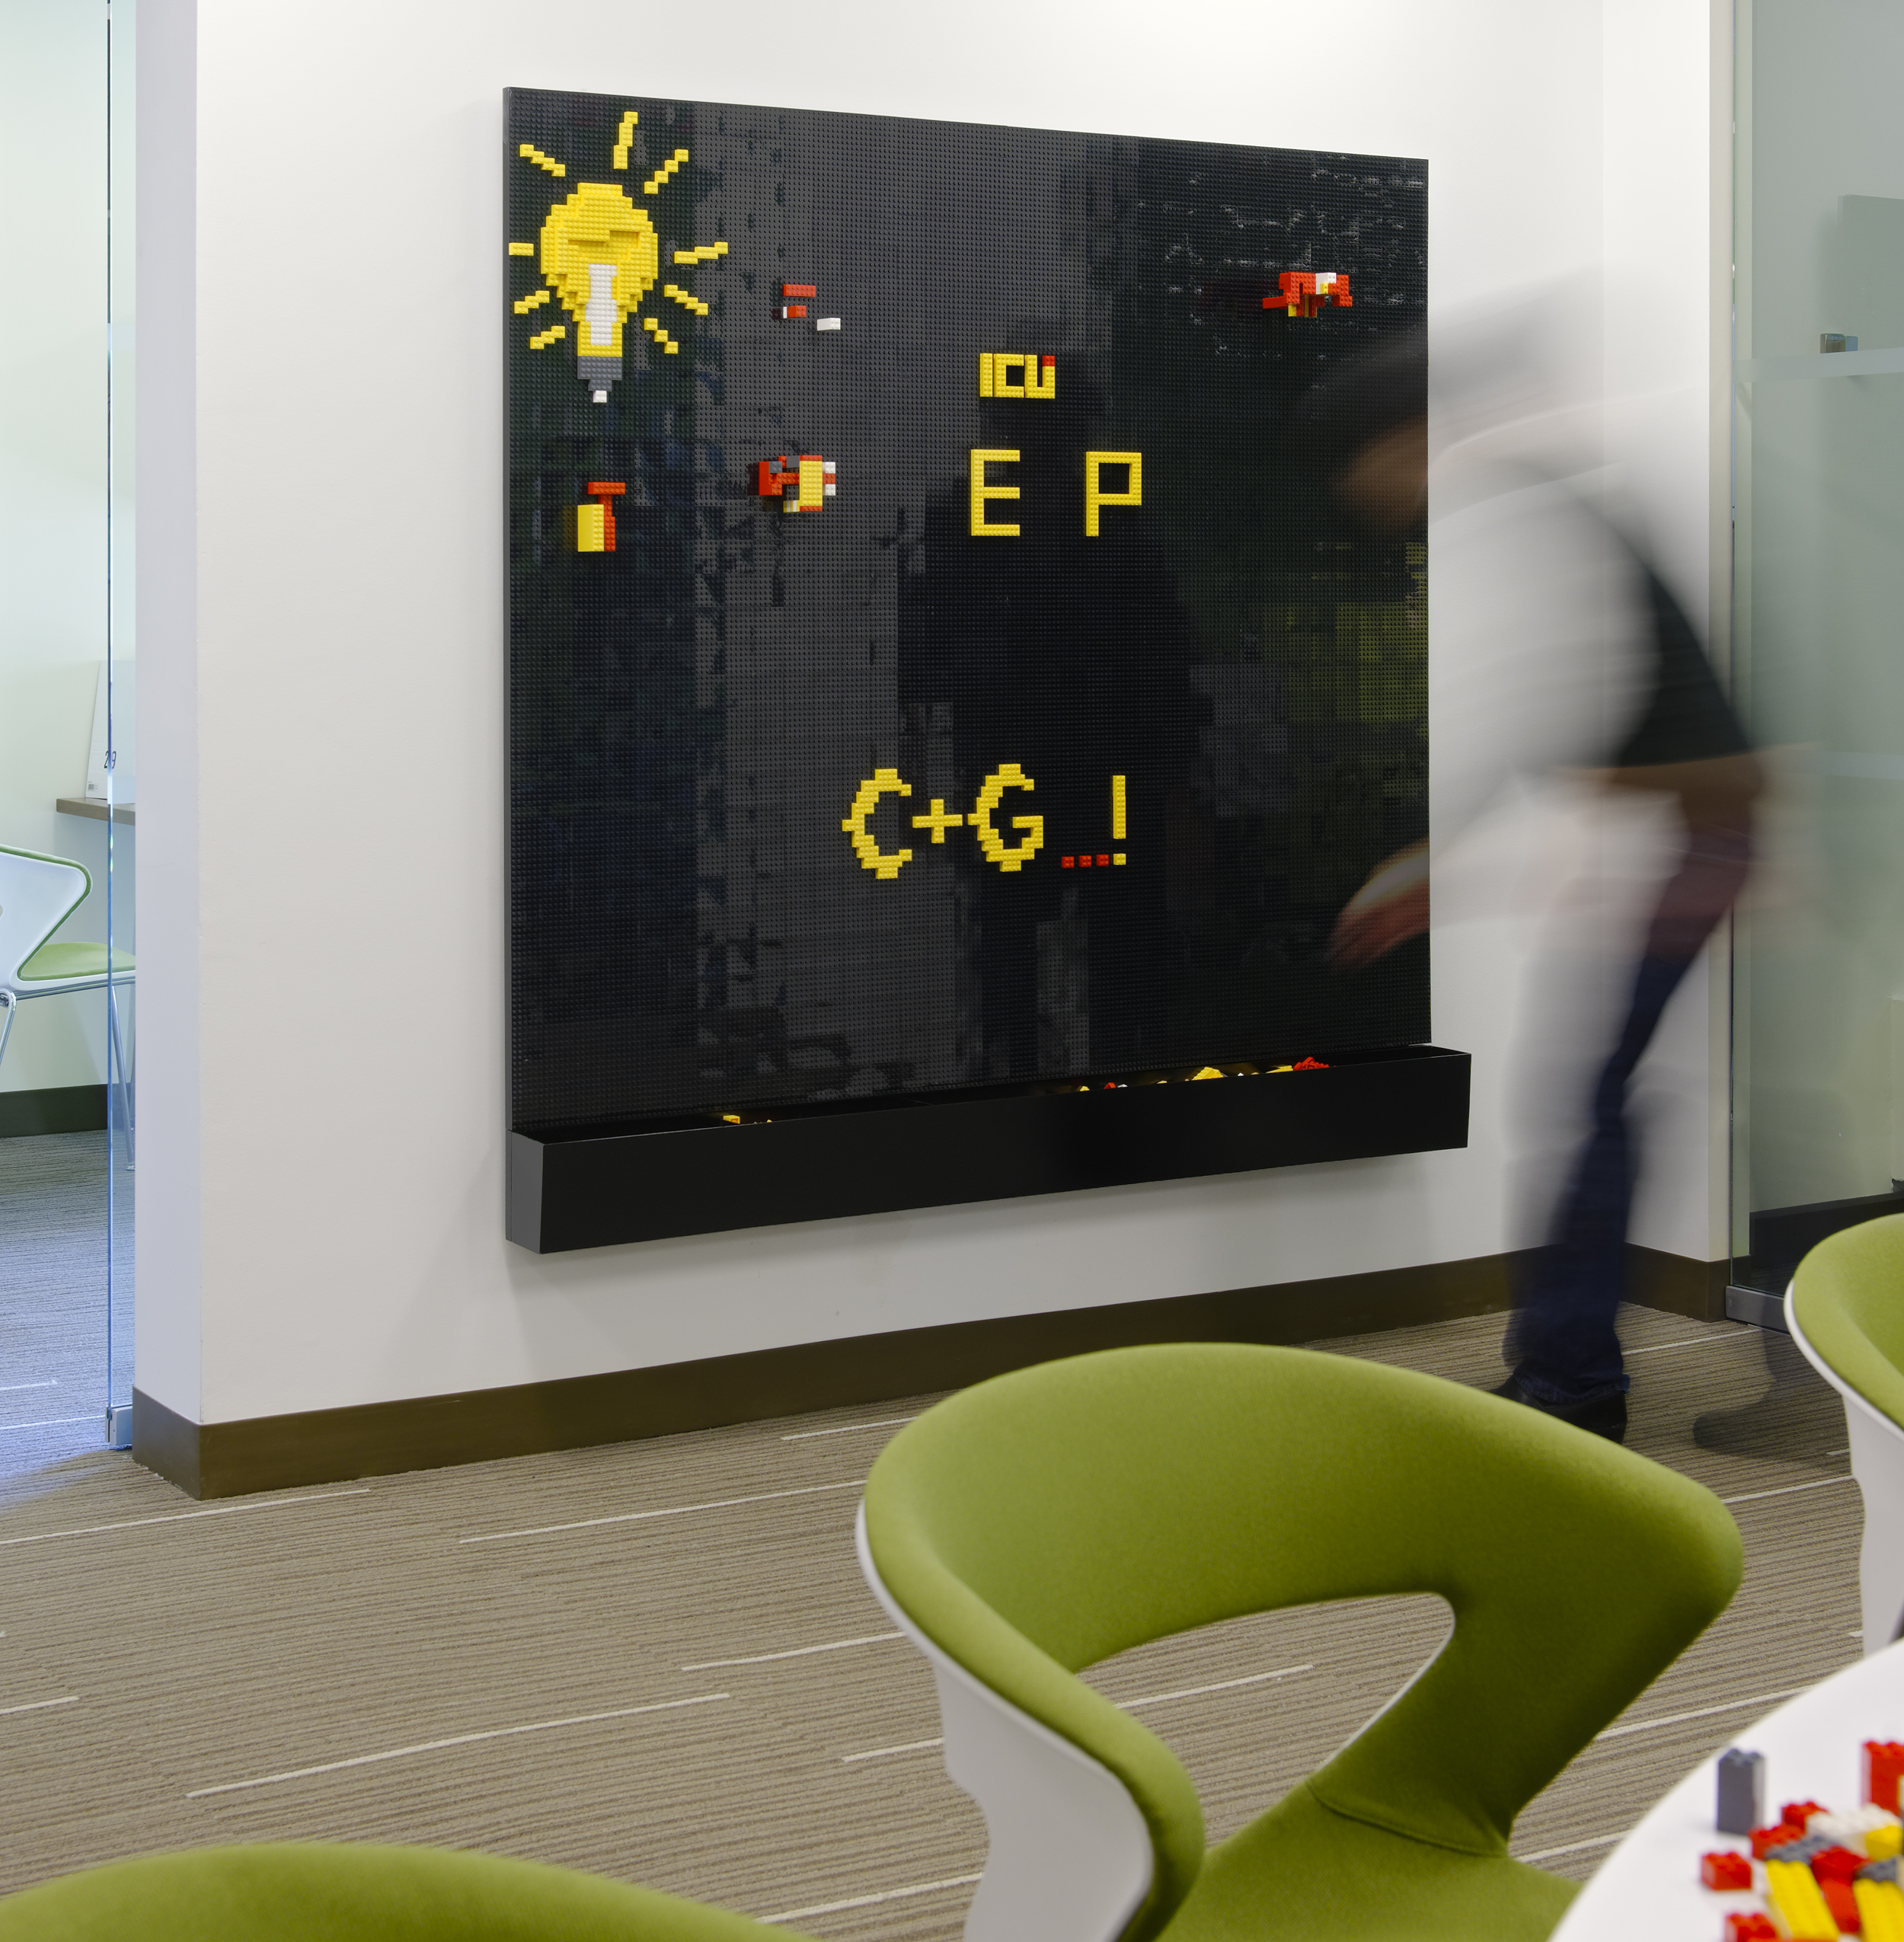 Project image 3 for Participatory Installations, Kaplan Thaler Group